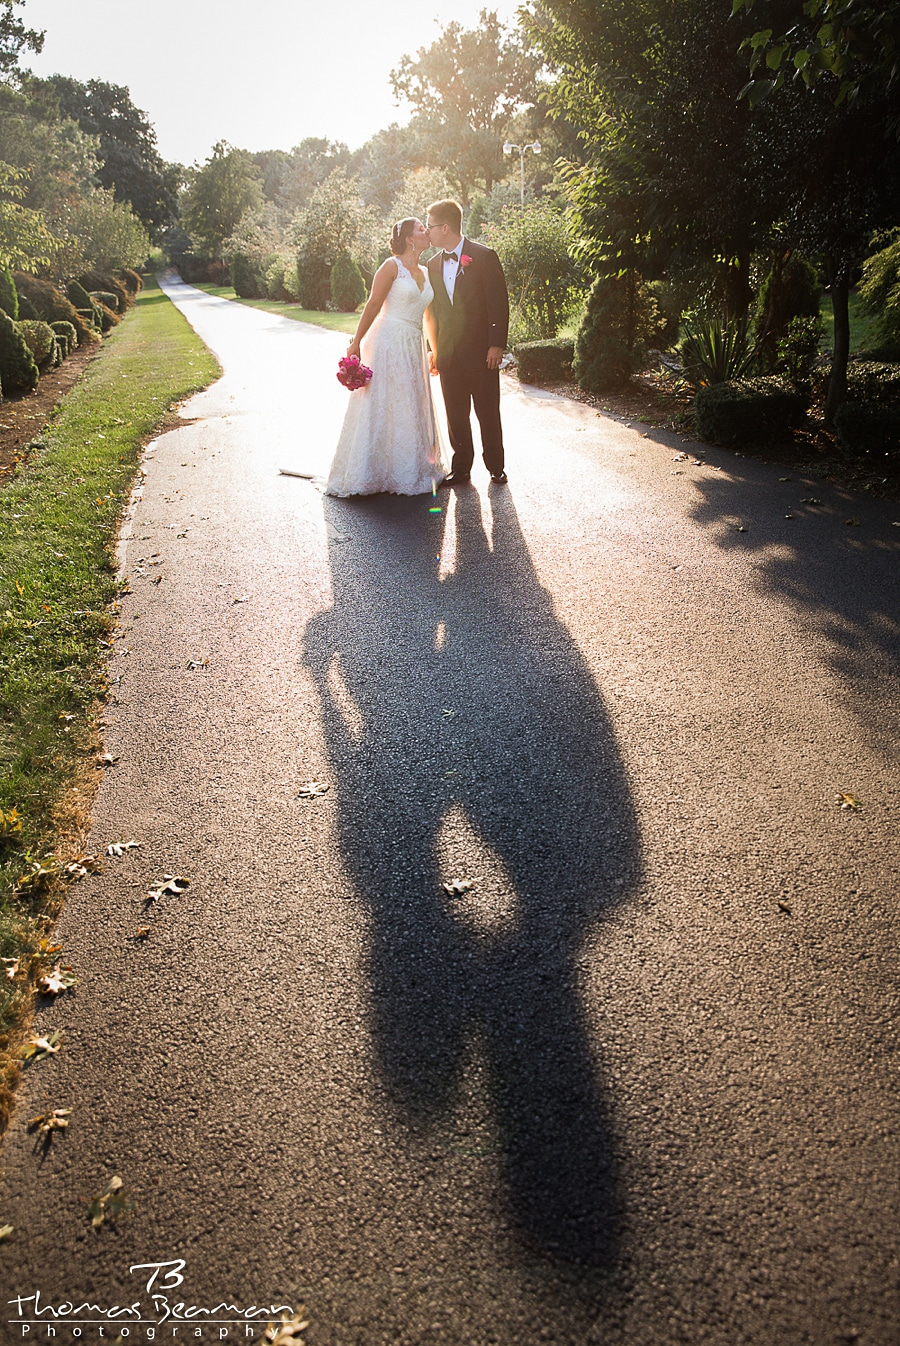 Thomas_beaman_wedding_best_of_2015_photo-88